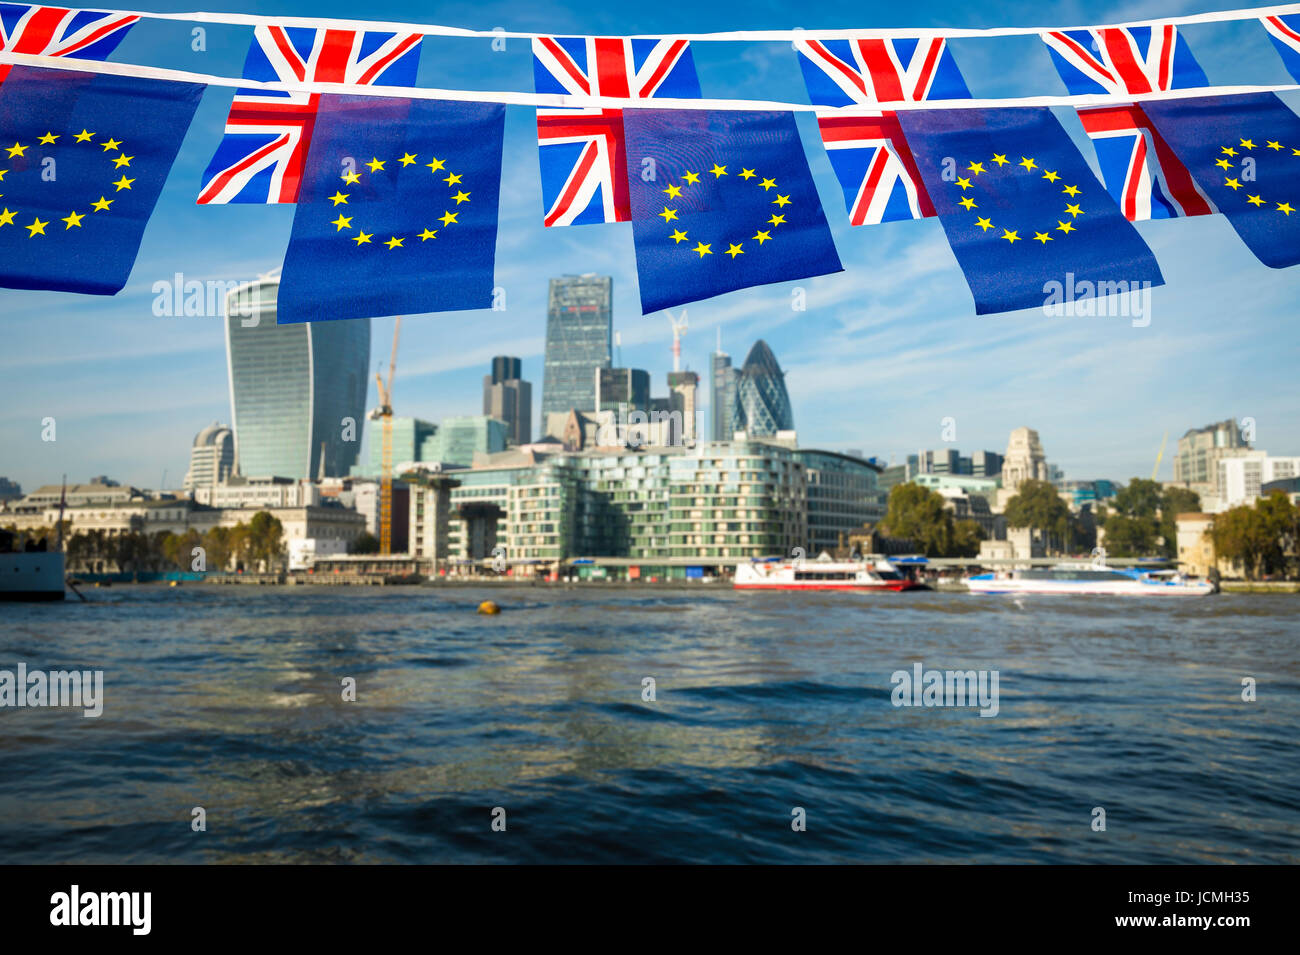 European Union and Union Jack bunting flags flying over the London skyline of the financial City center at the River - Stock Image